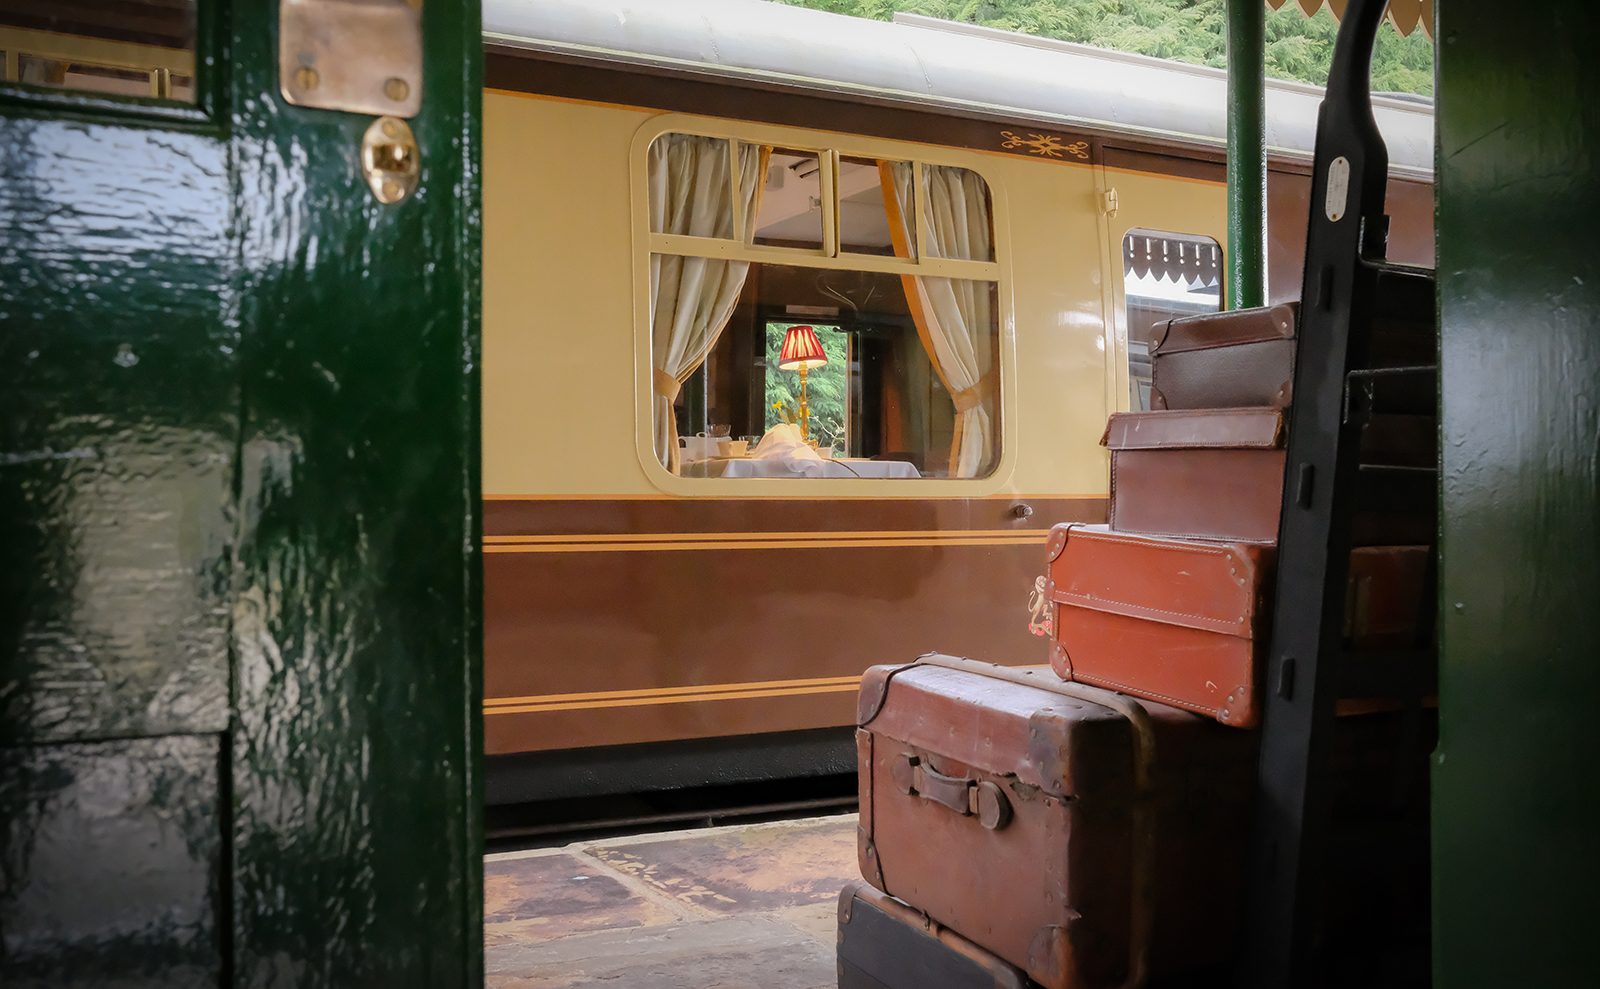 Gourmet Meals, Champagne, and Adventure Aboard a Vintage Train in 'The Dining Car'